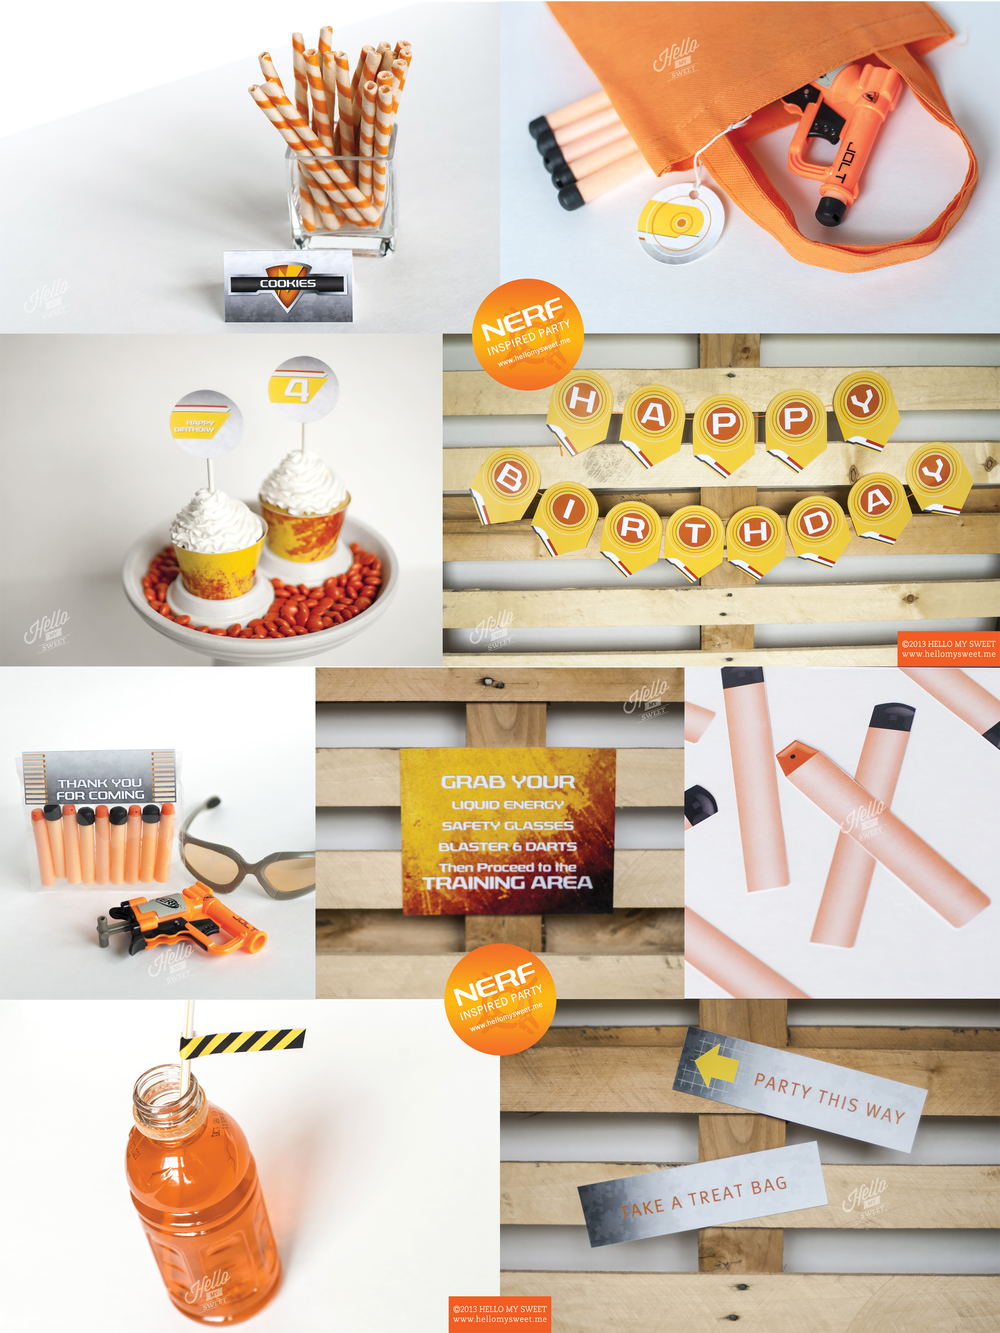 Nerf Birthday Party - Printable Decoration Set